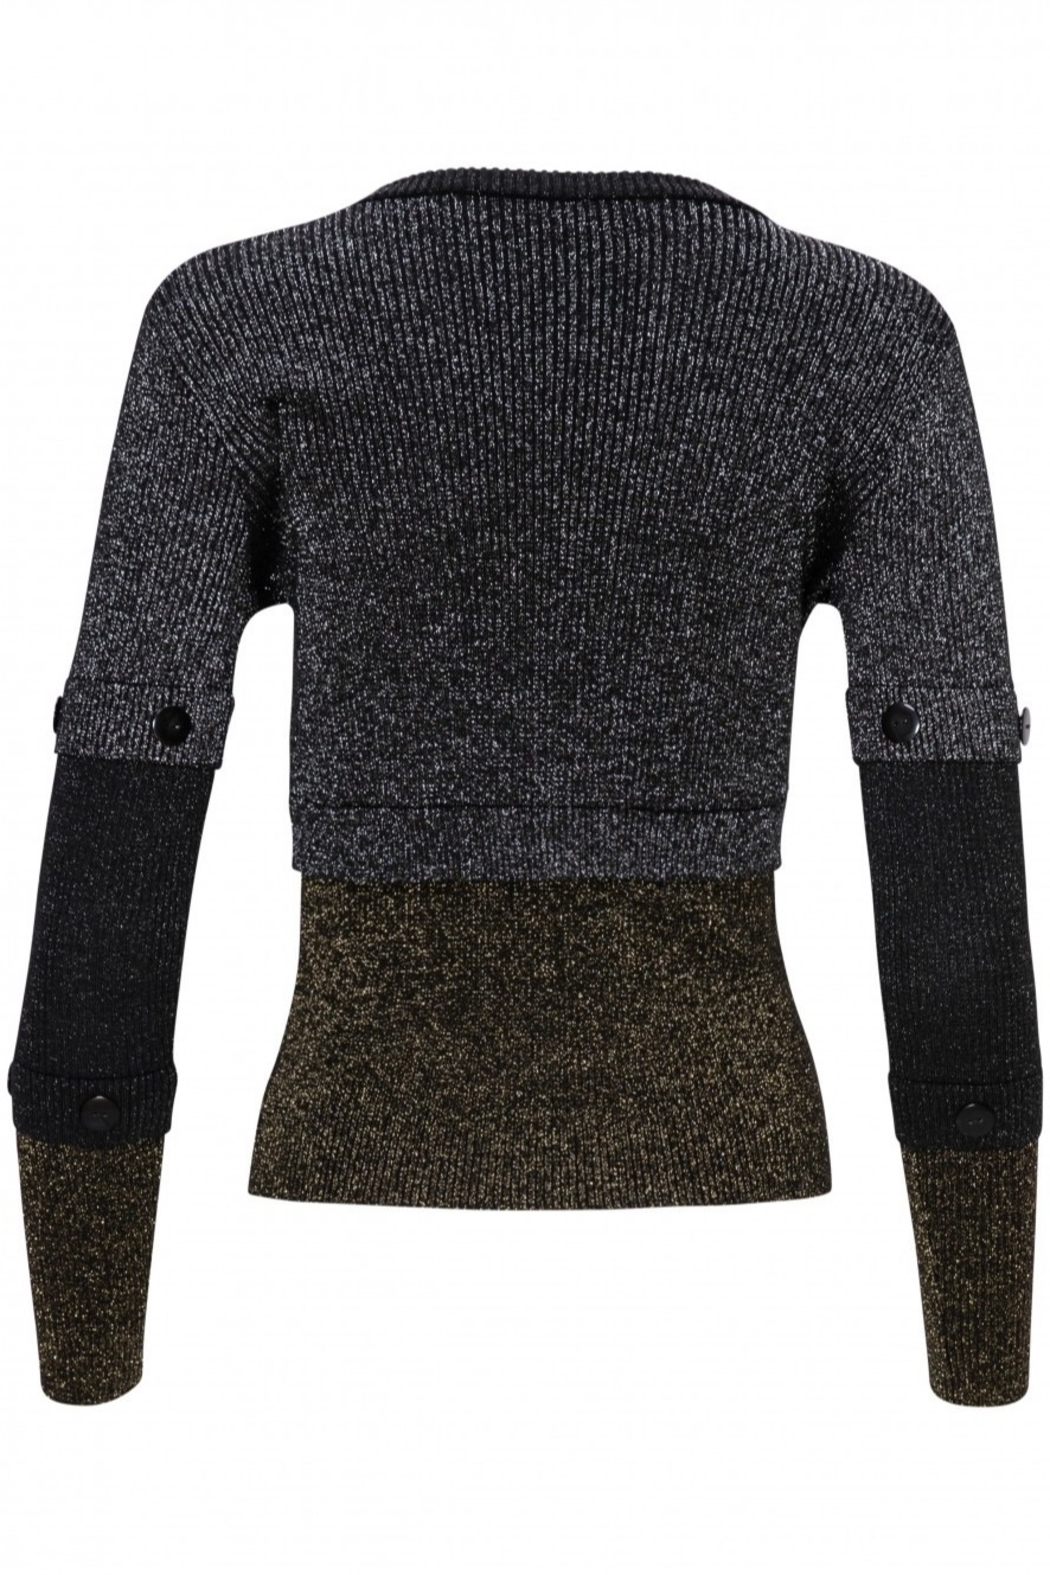 Yal NY Lurex black/gold/silver sweater - Side Cropped Image